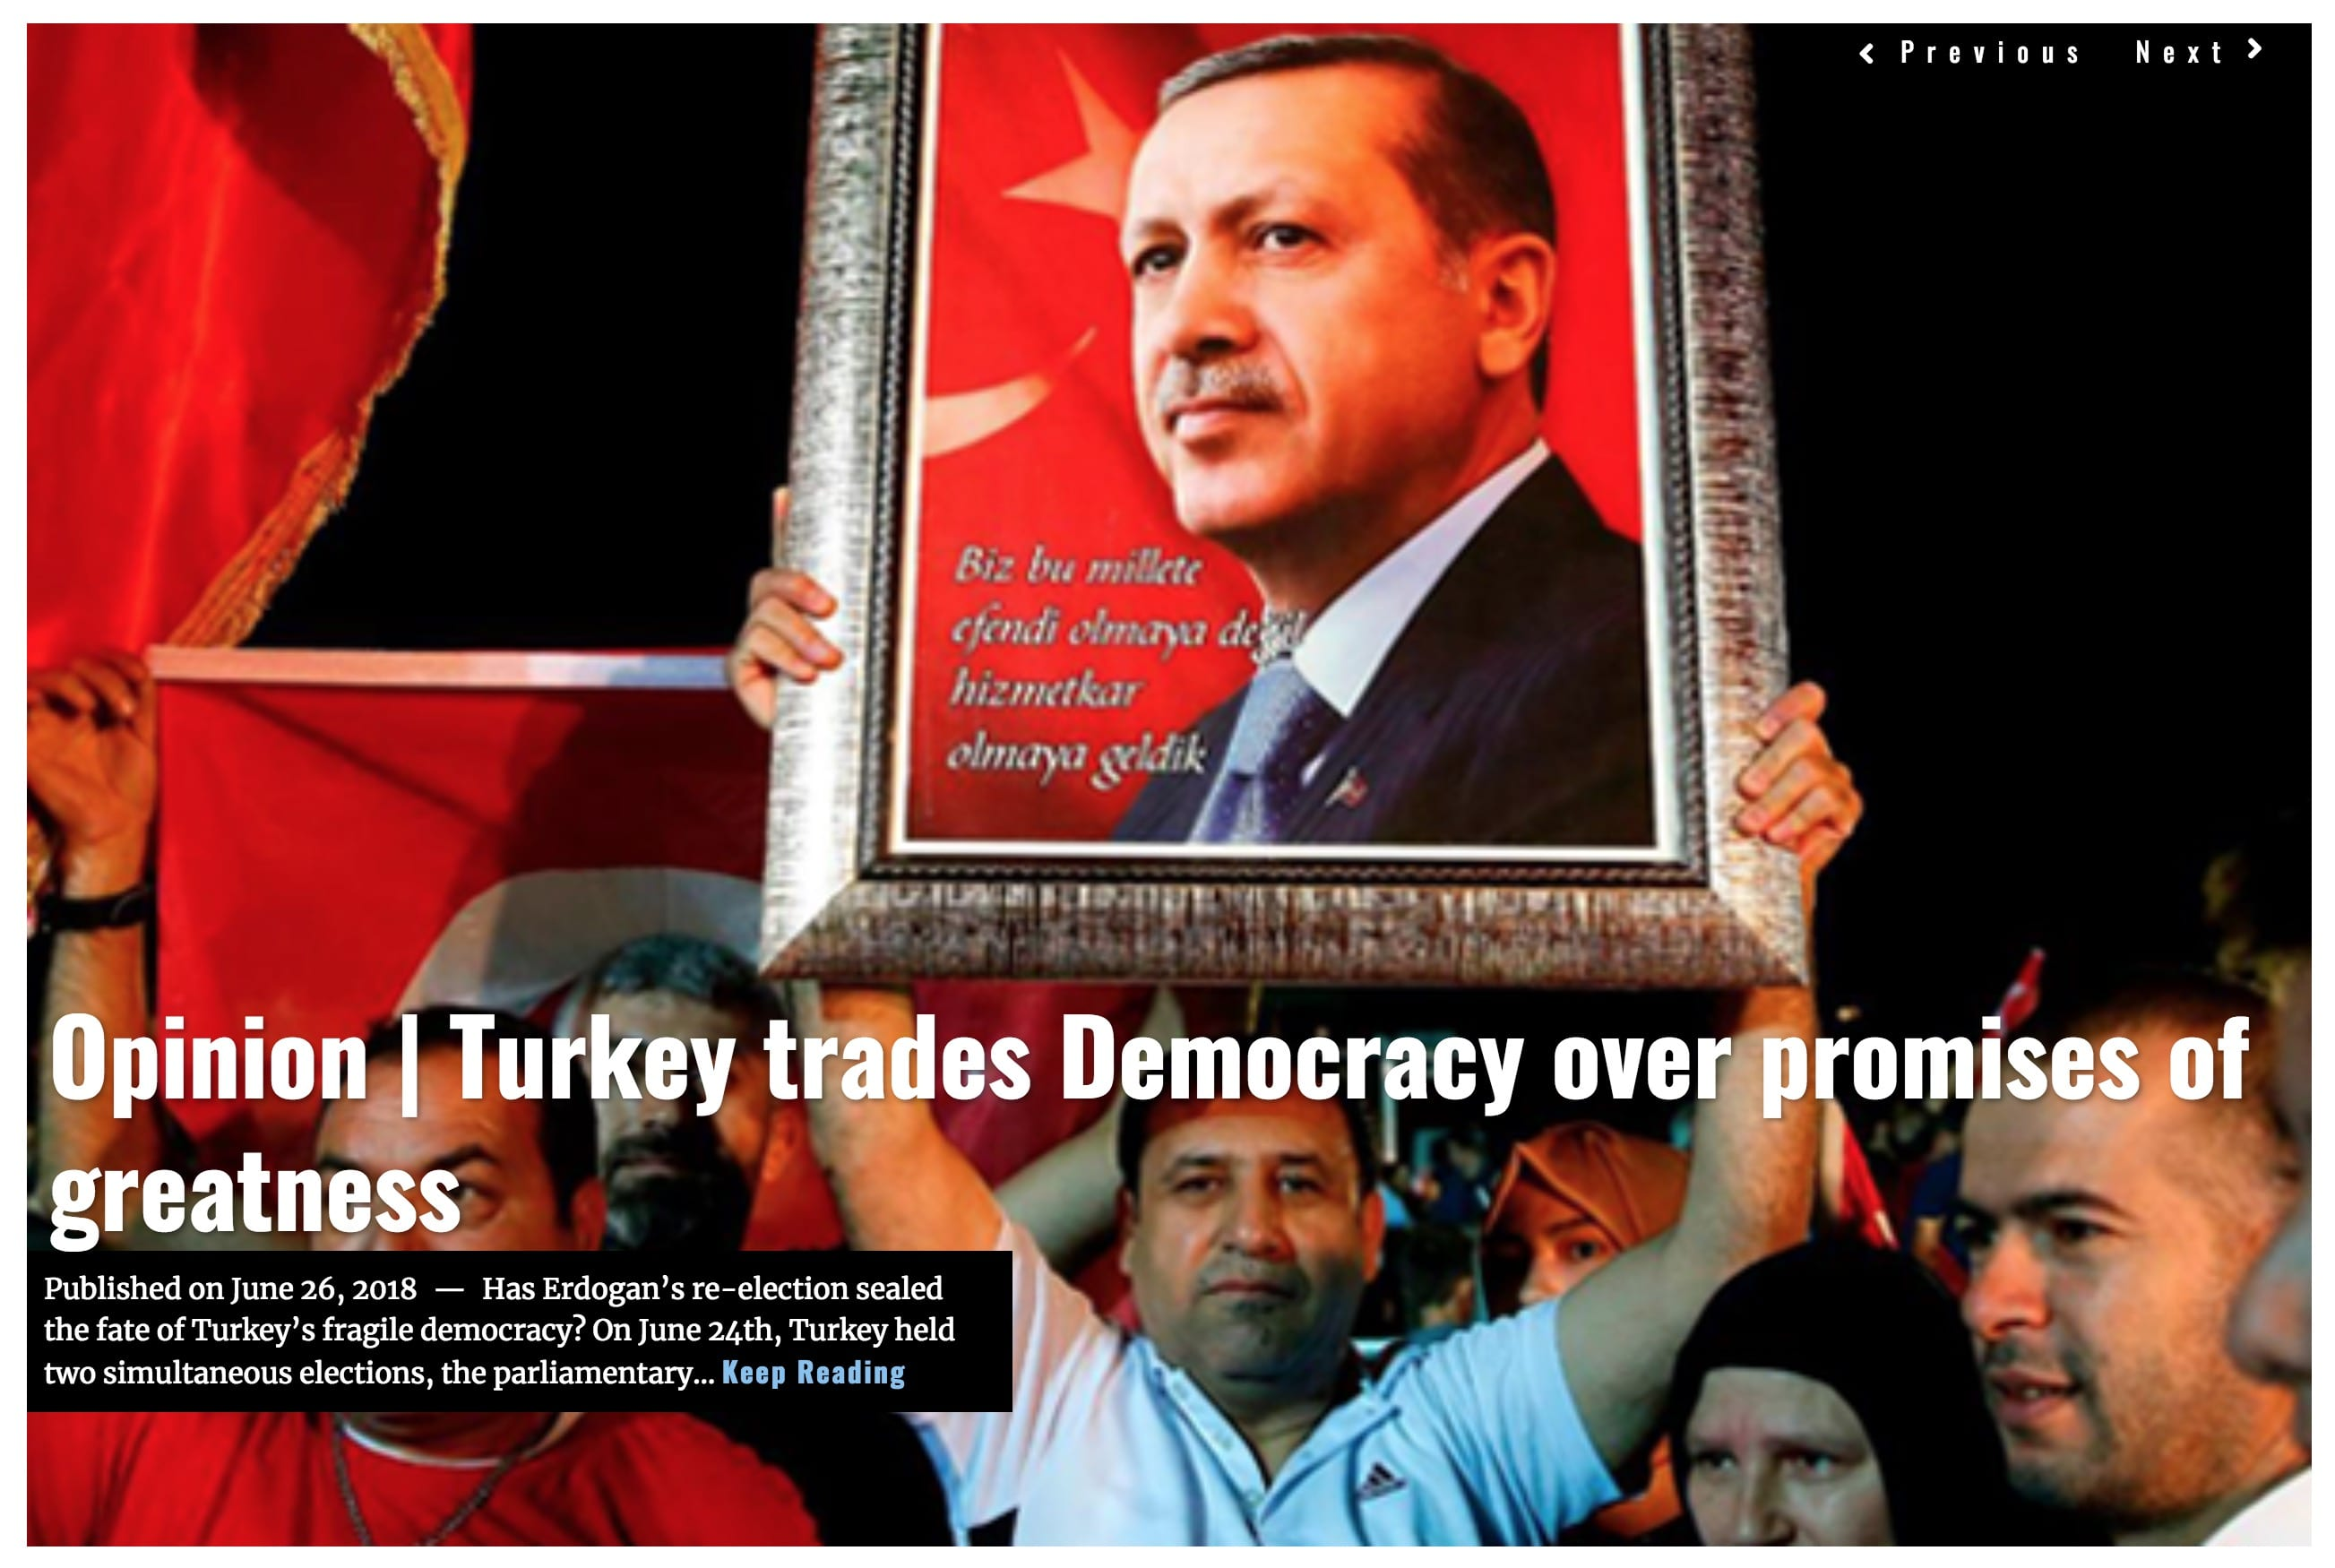 Image Lima Charlie News Headline Turkey Trades Democracy JUN 26 2018